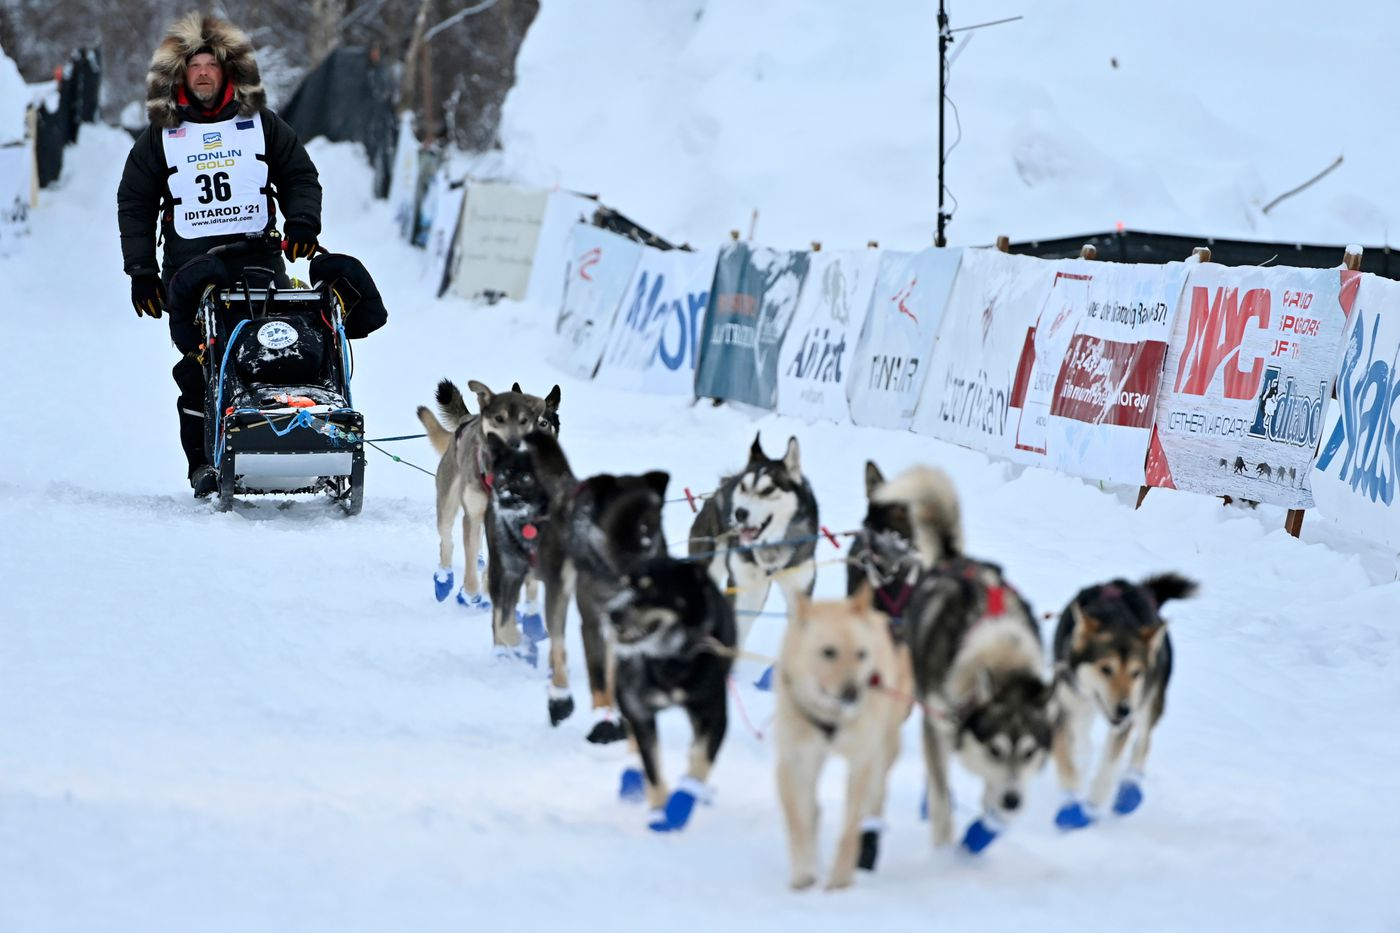 Aaron Burmeister of Nenana arrived in Willow to place second in the 2021 Iditarod. (Marc Lester / ADN)